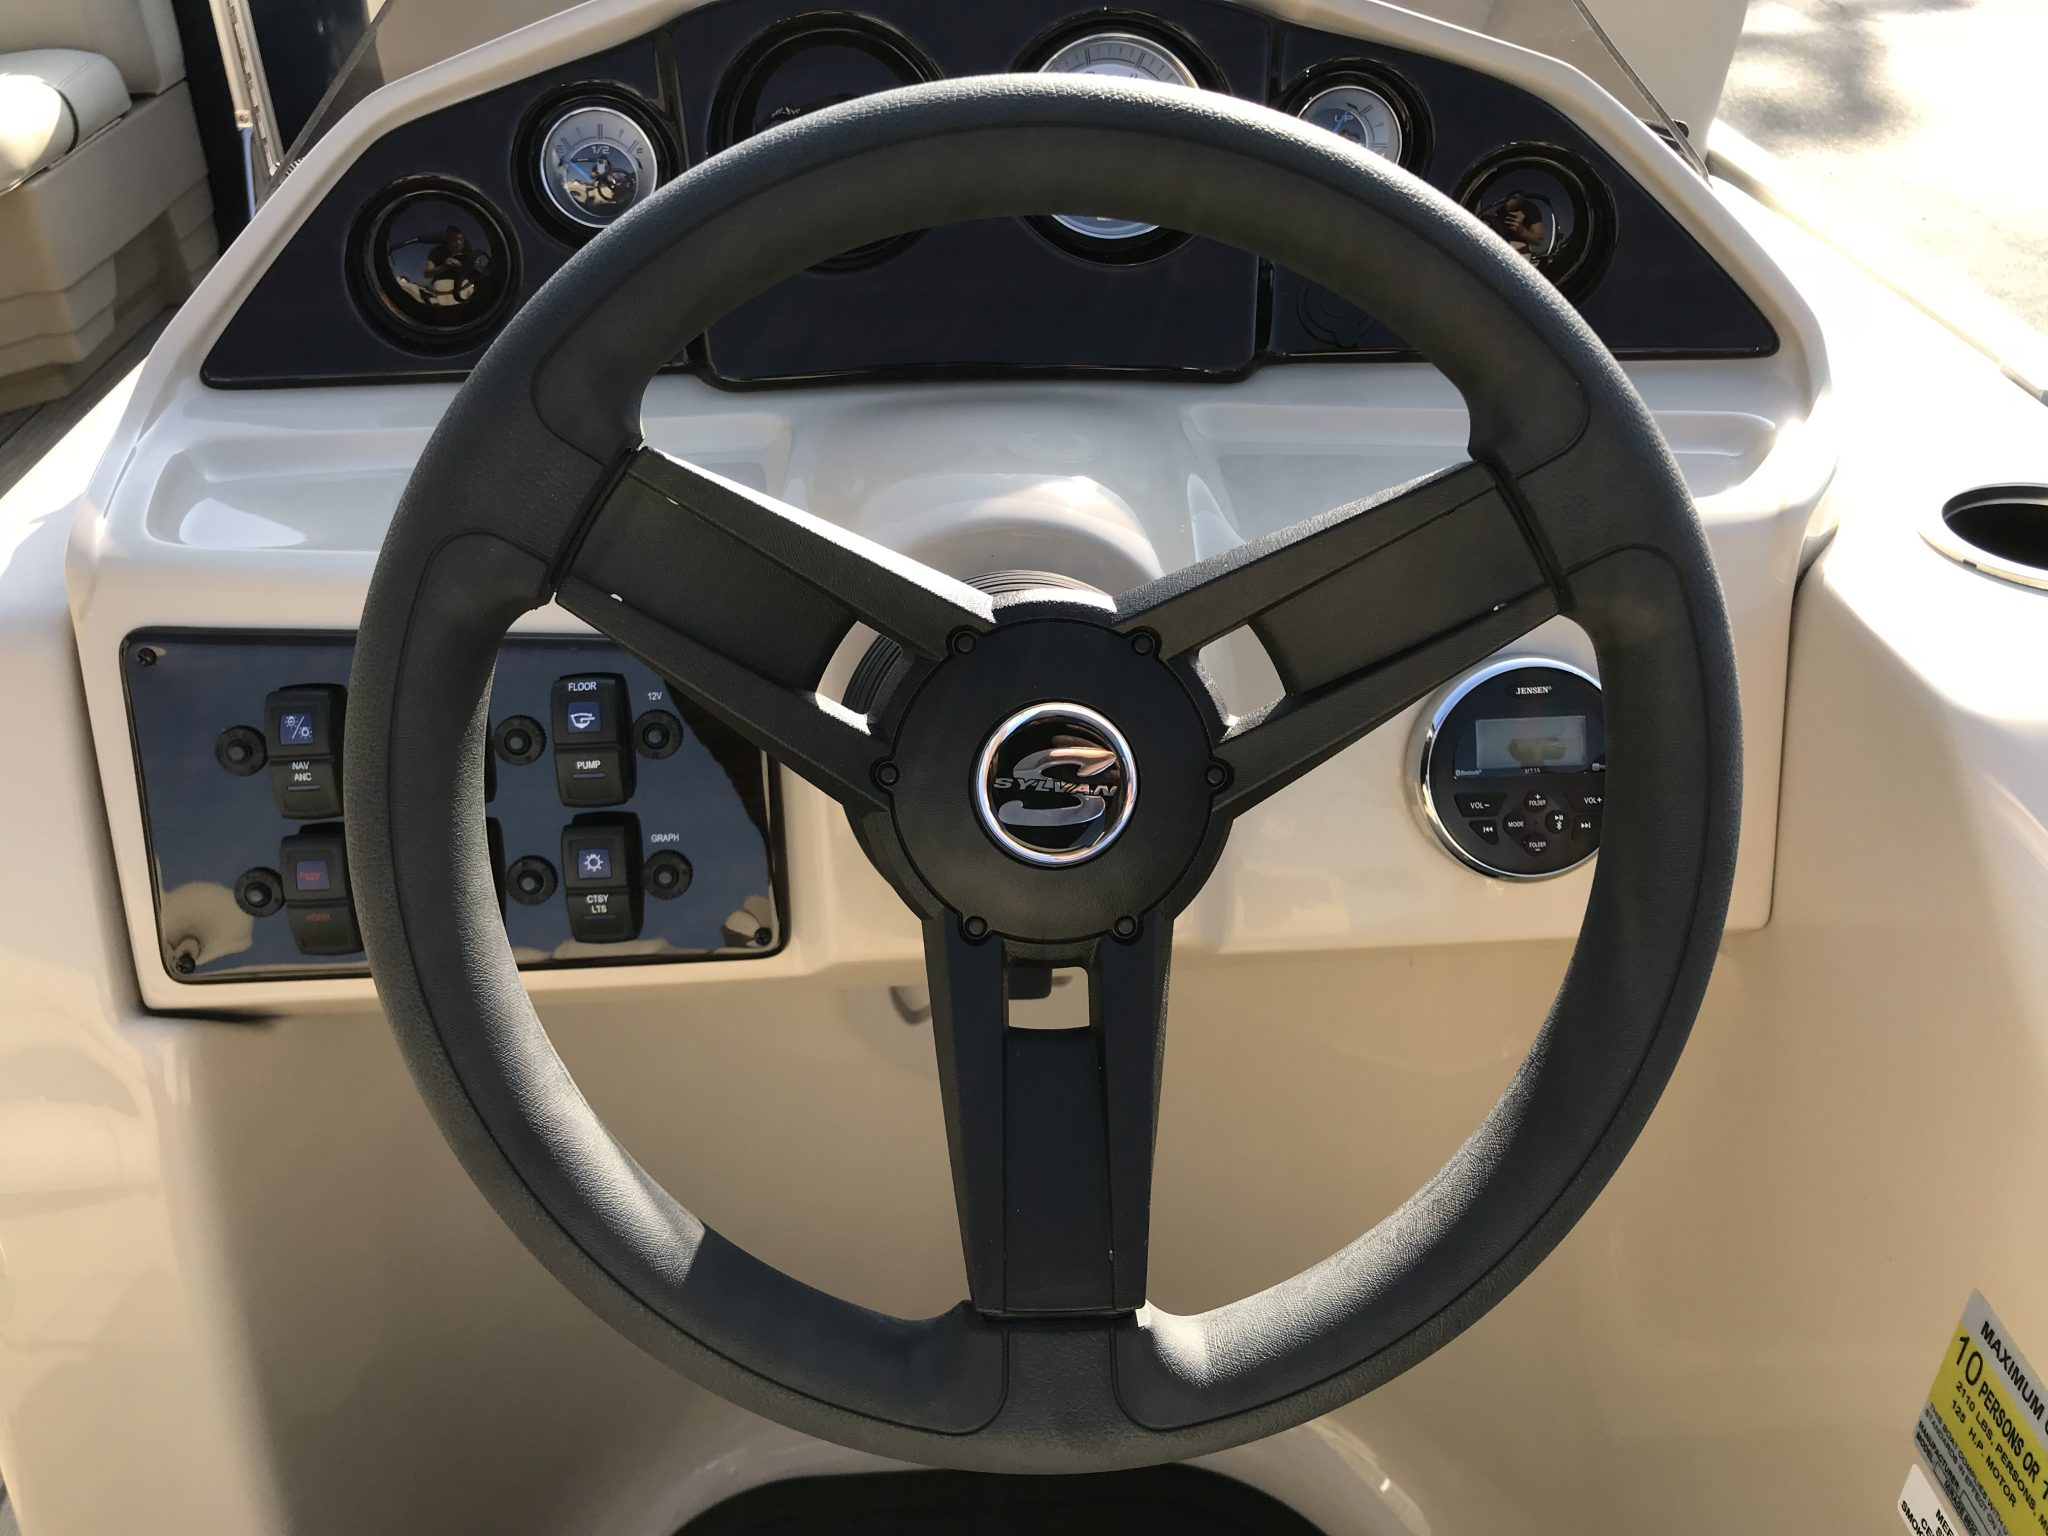 Sylvan 8520 Cruise-n-Fish Steering Wheel